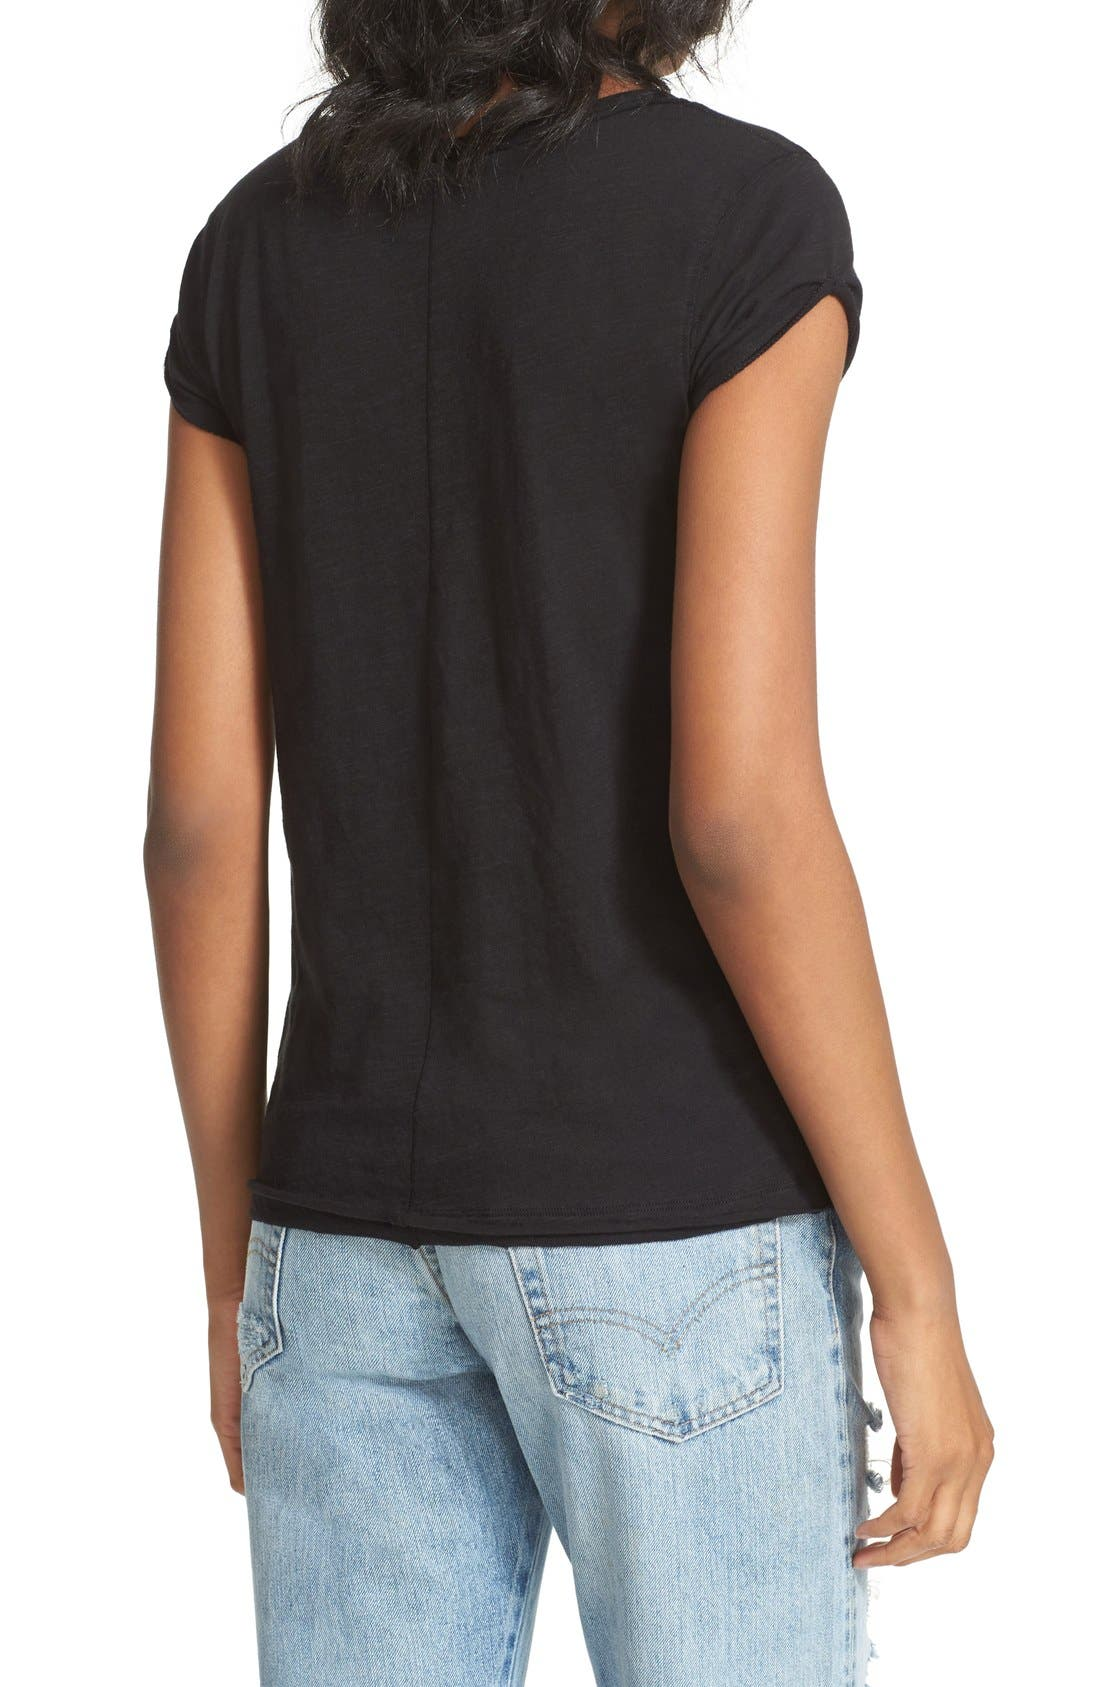 We the Free by Free People Tee,                             Alternate thumbnail 4, color,                             BLACK